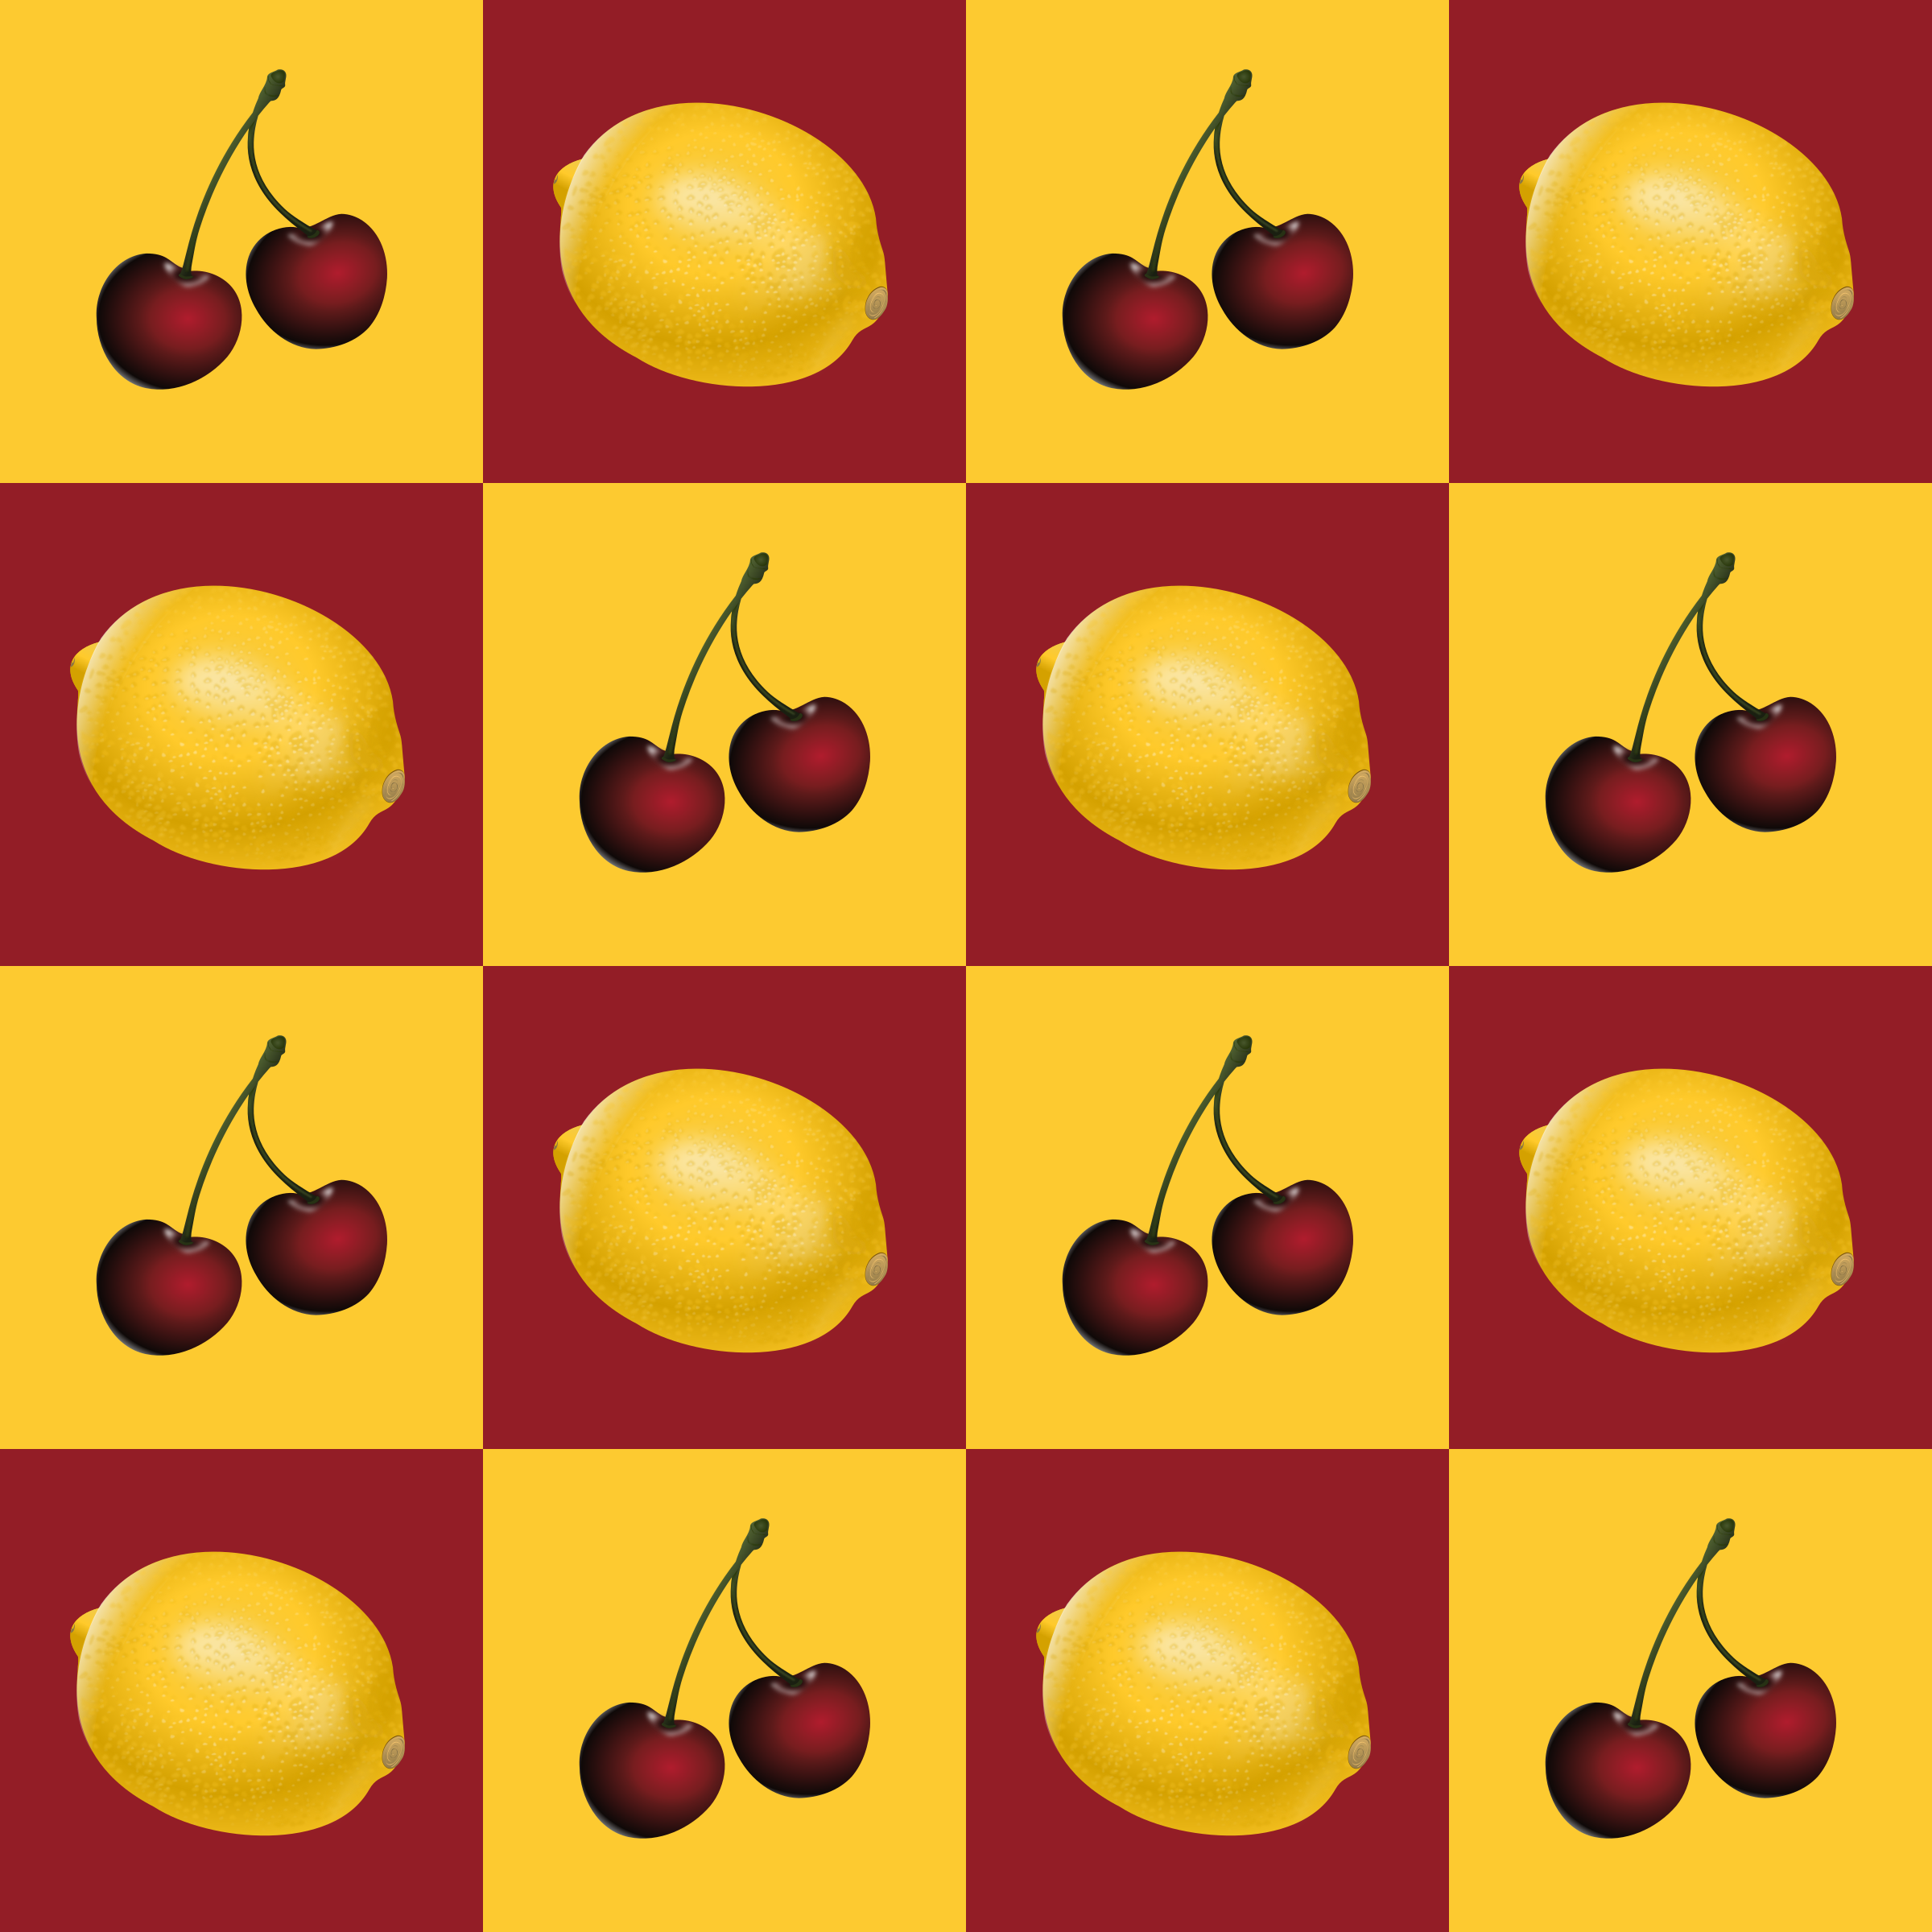 Fruit pattern by Firkin